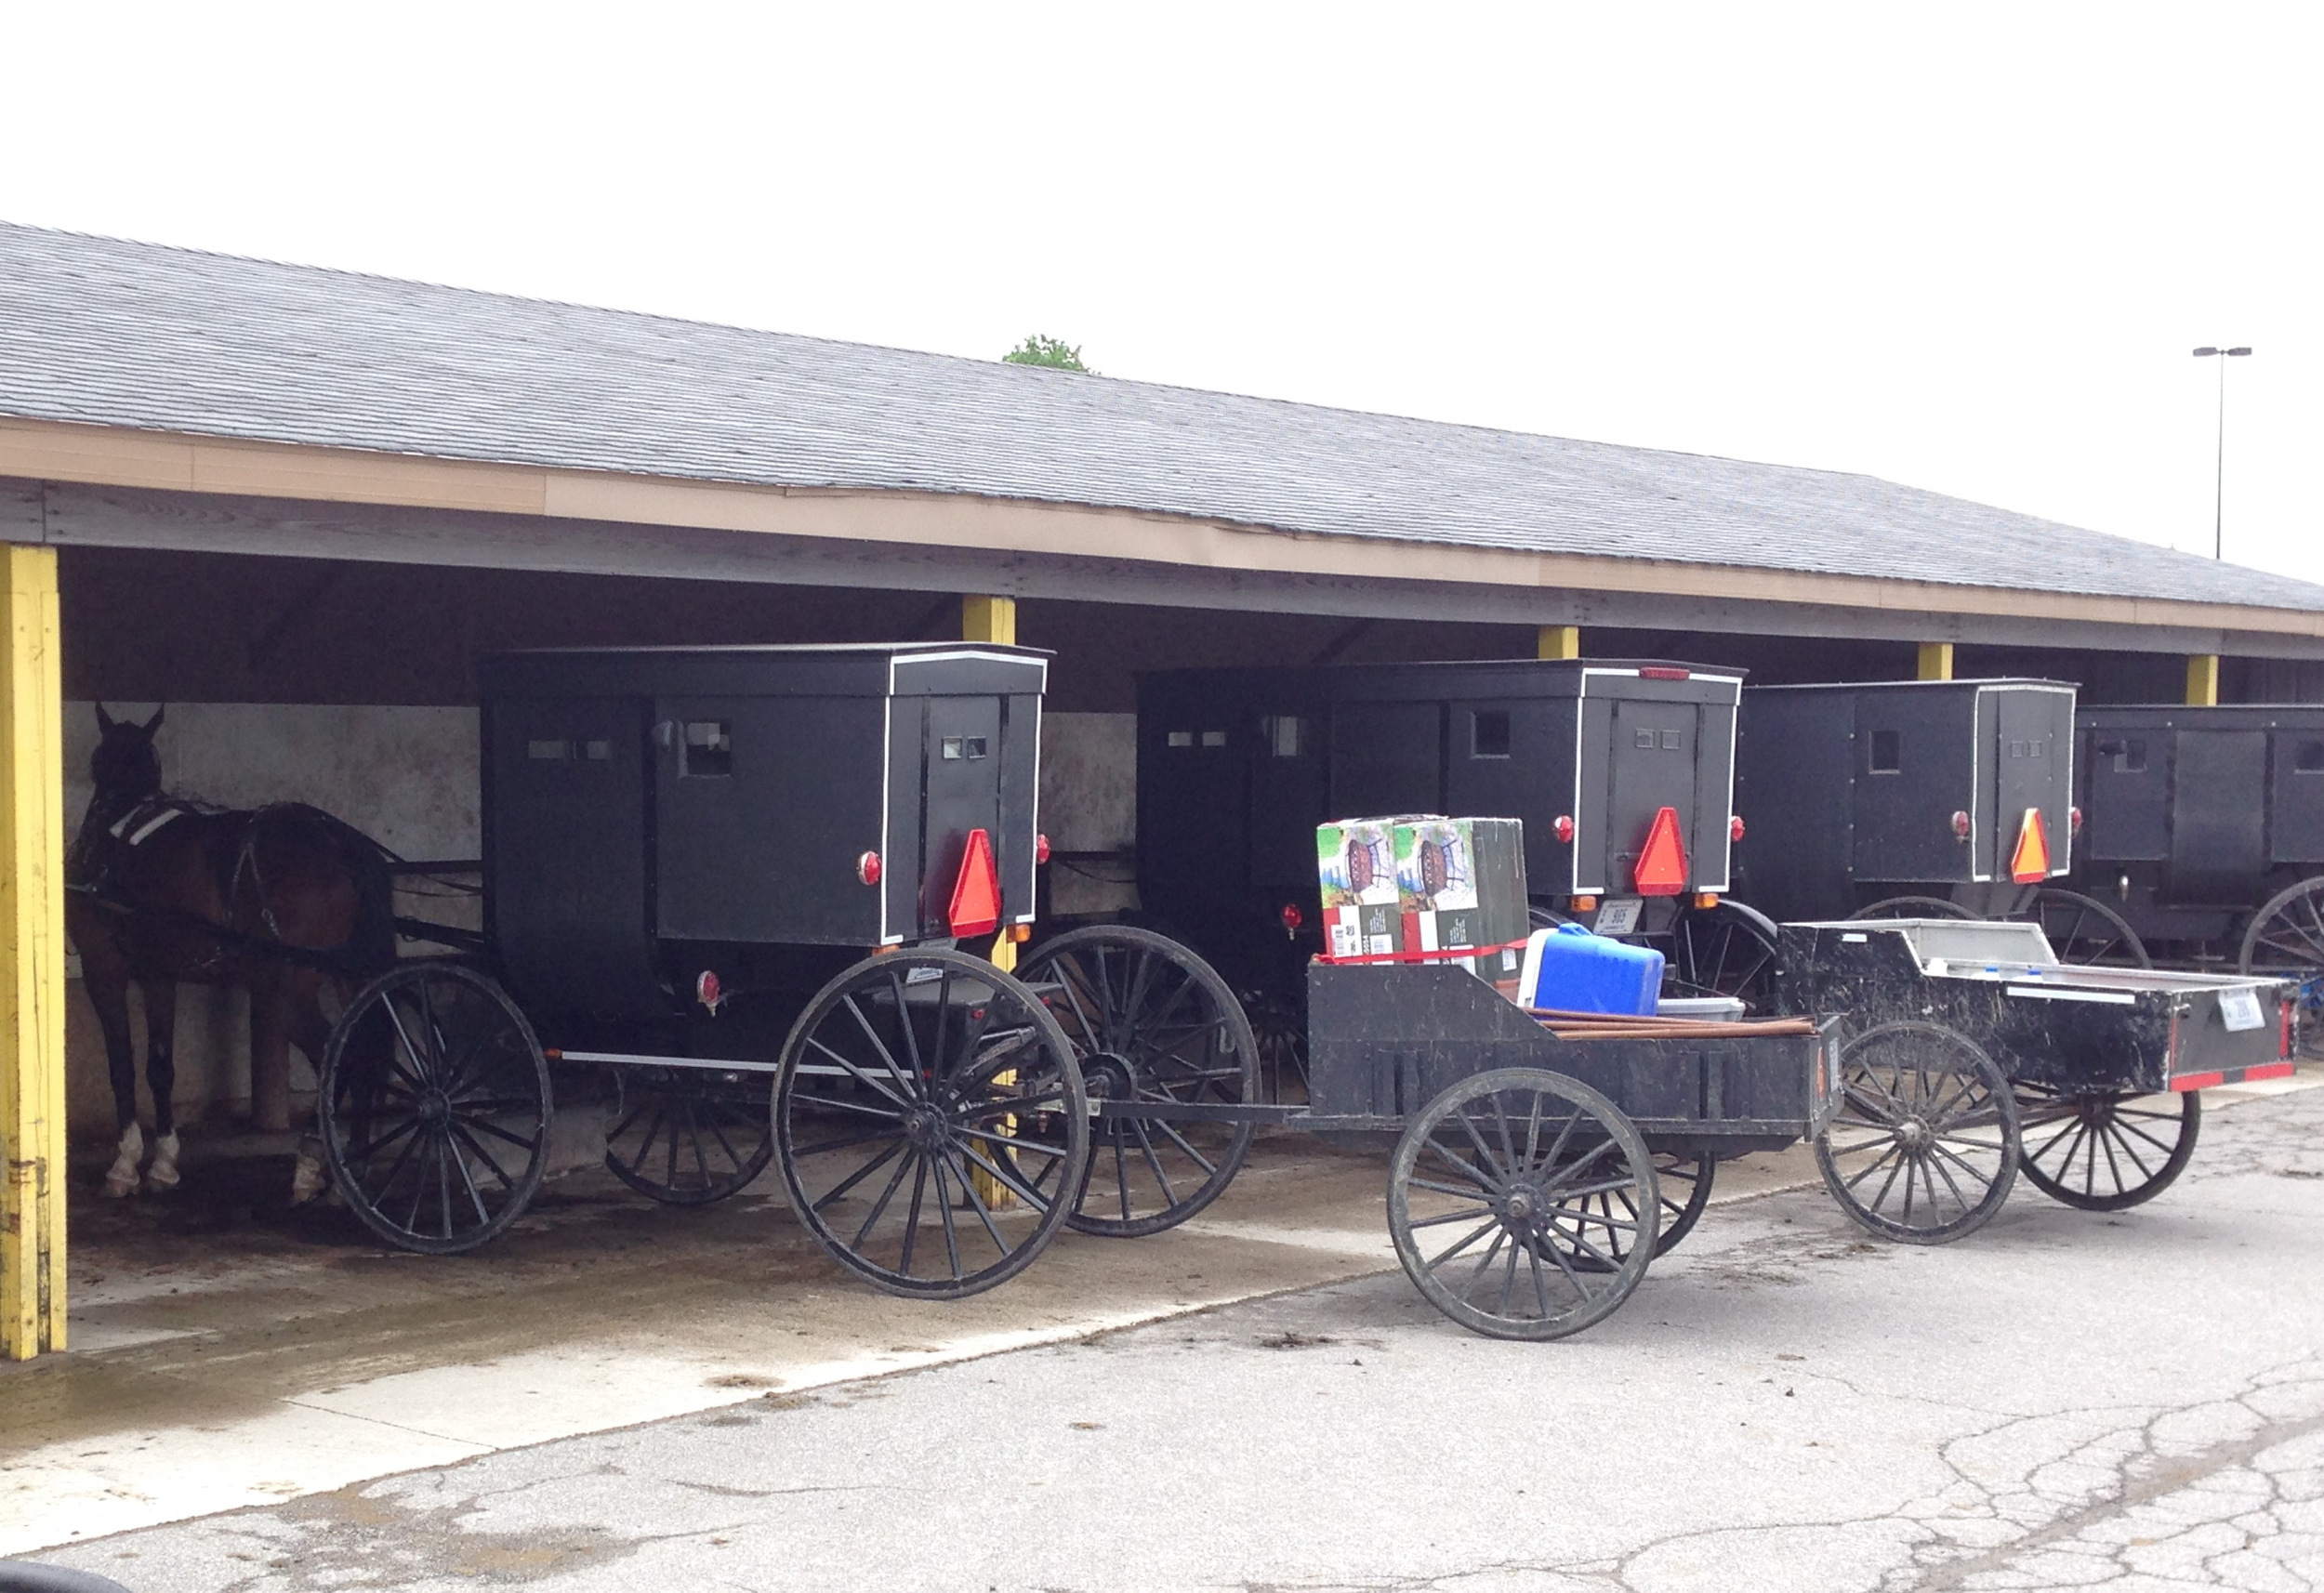 Horse,buggy and trailer parking. You think they have Coors Light in that ice chest?